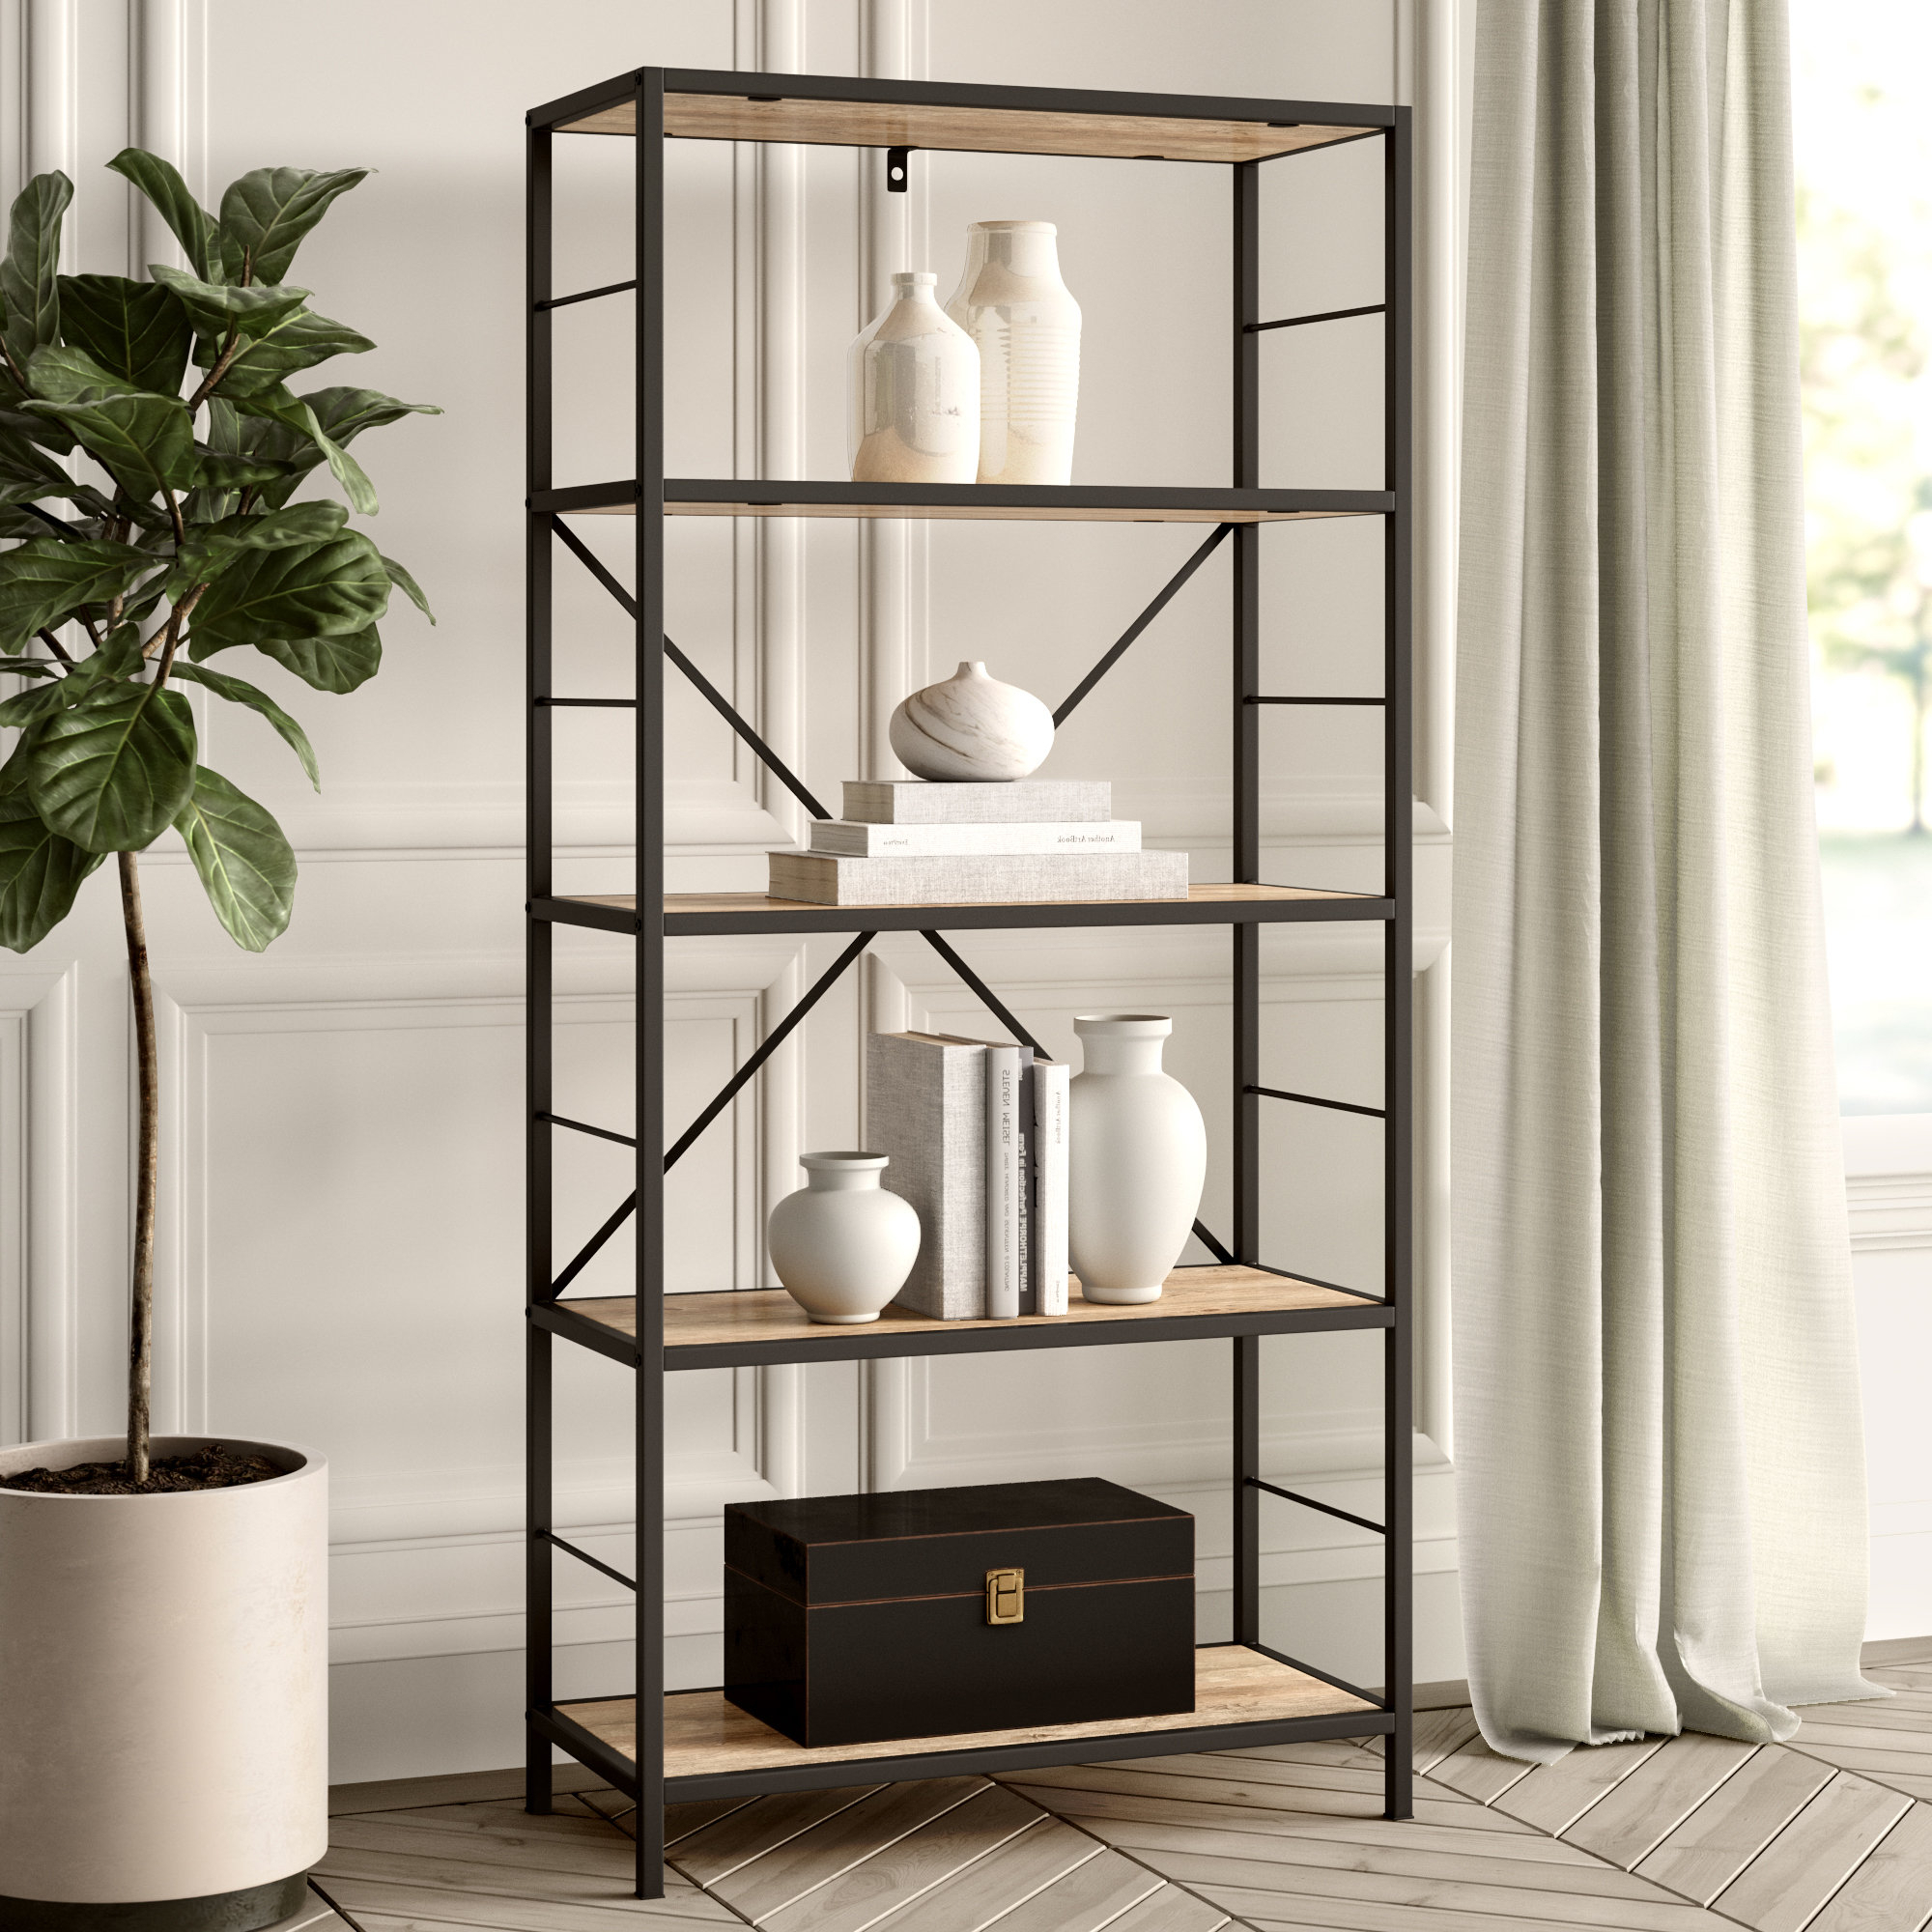 Fashionable Ermont Etagere Bookcases With Regard To Macon Etagere Bookcase (View 16 of 20)